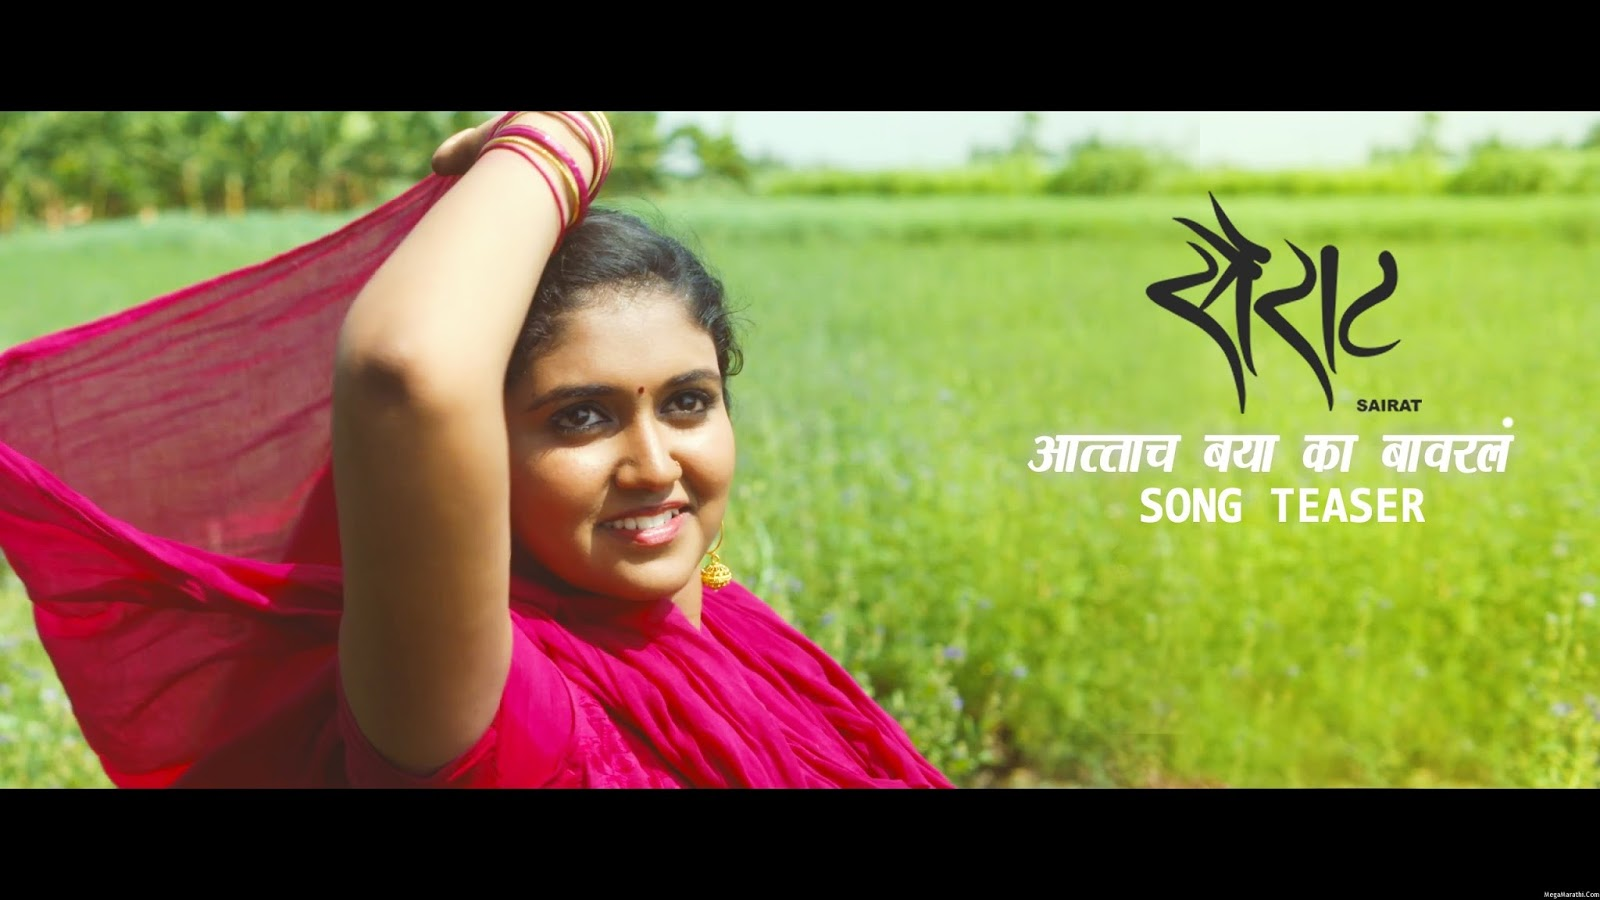 Sairat Marathi Movies Full Hd Video Song, Mp3, Dvdrip -5467